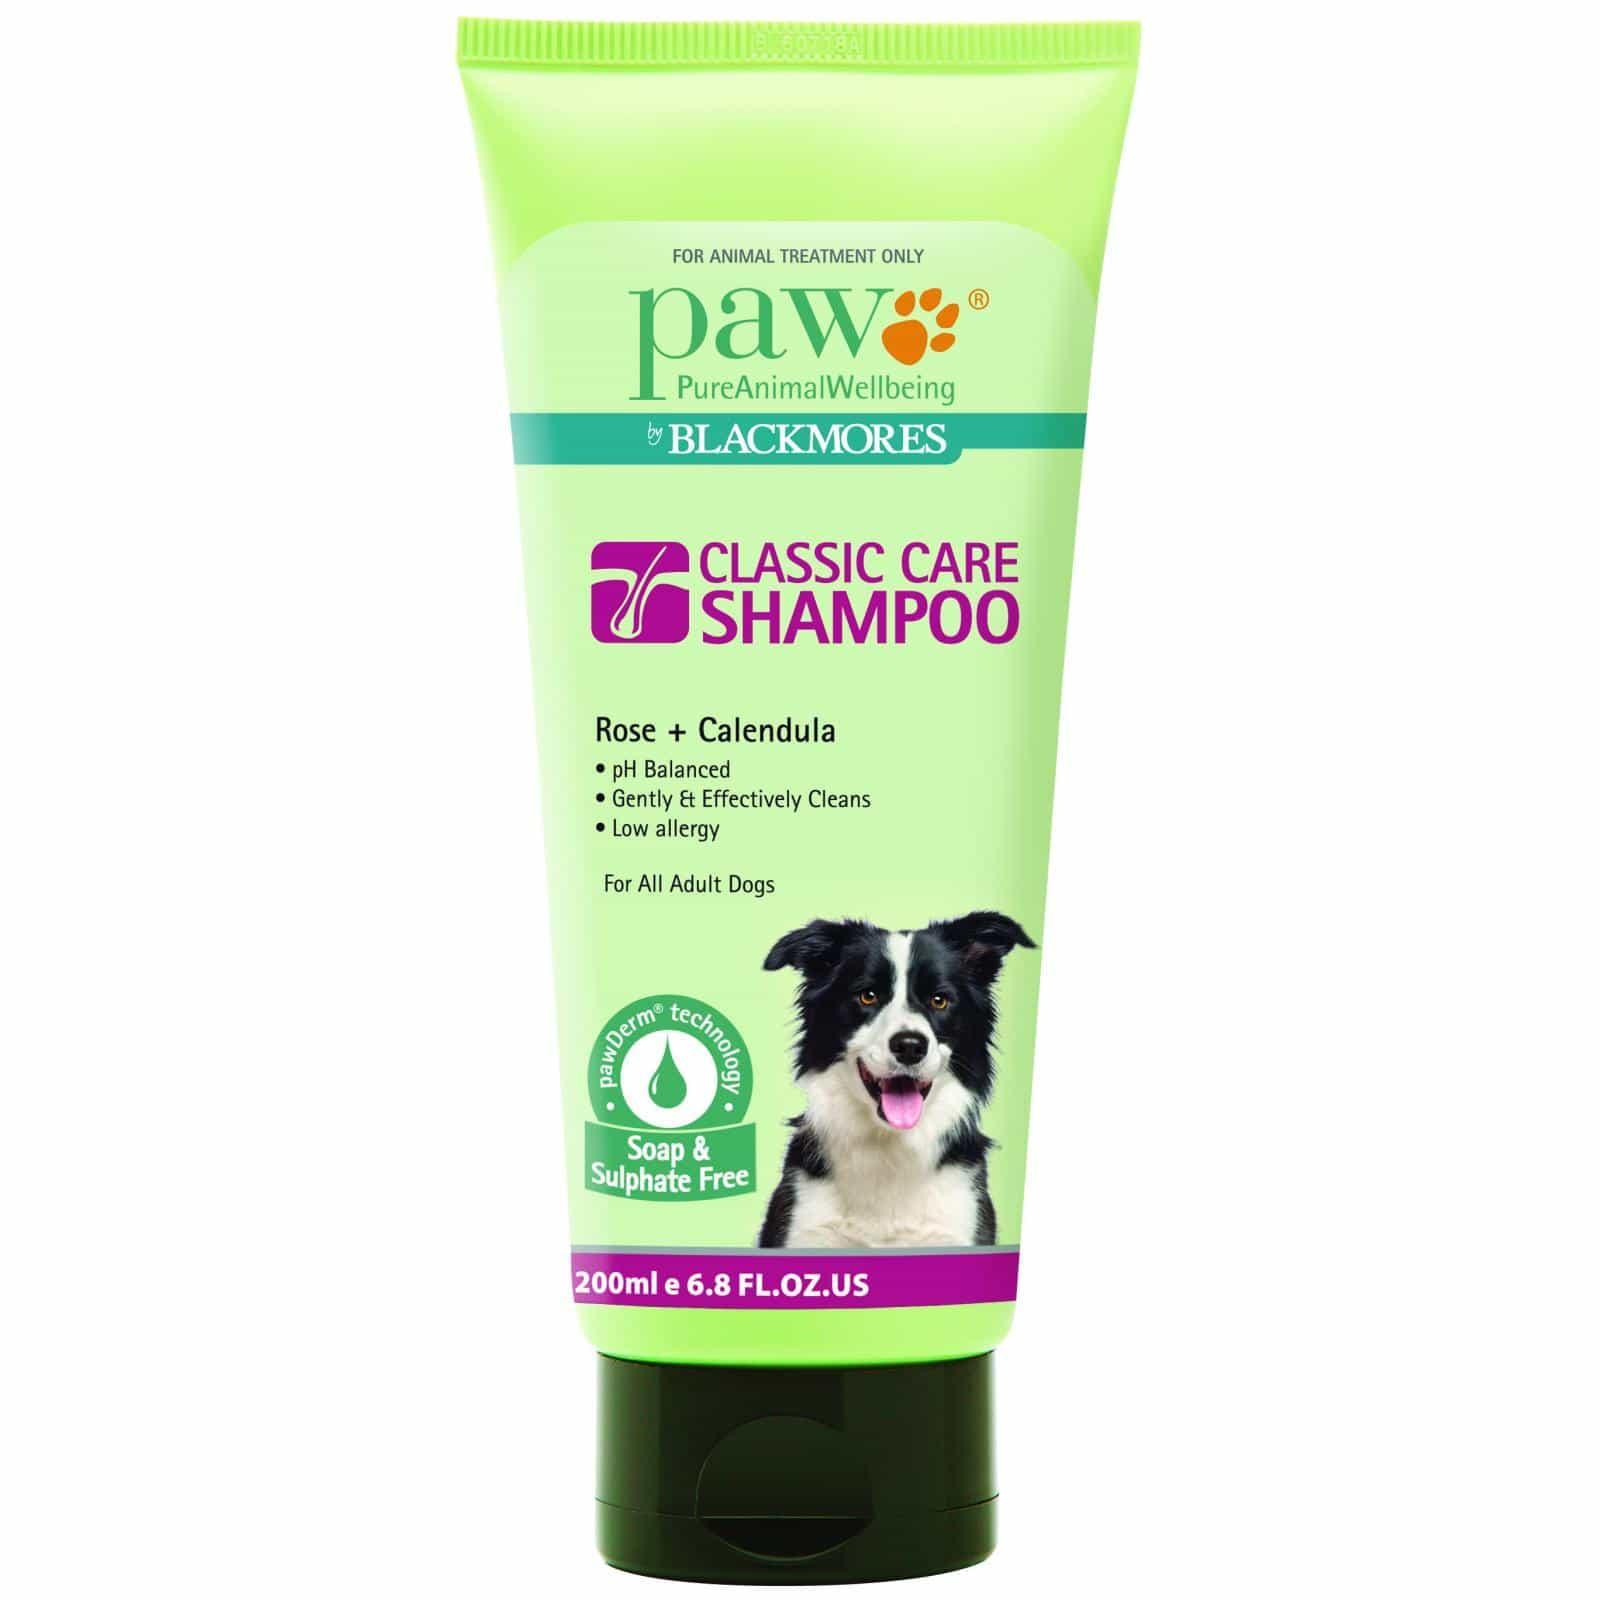 Paw PAW Classic Care Shampoo 200ml